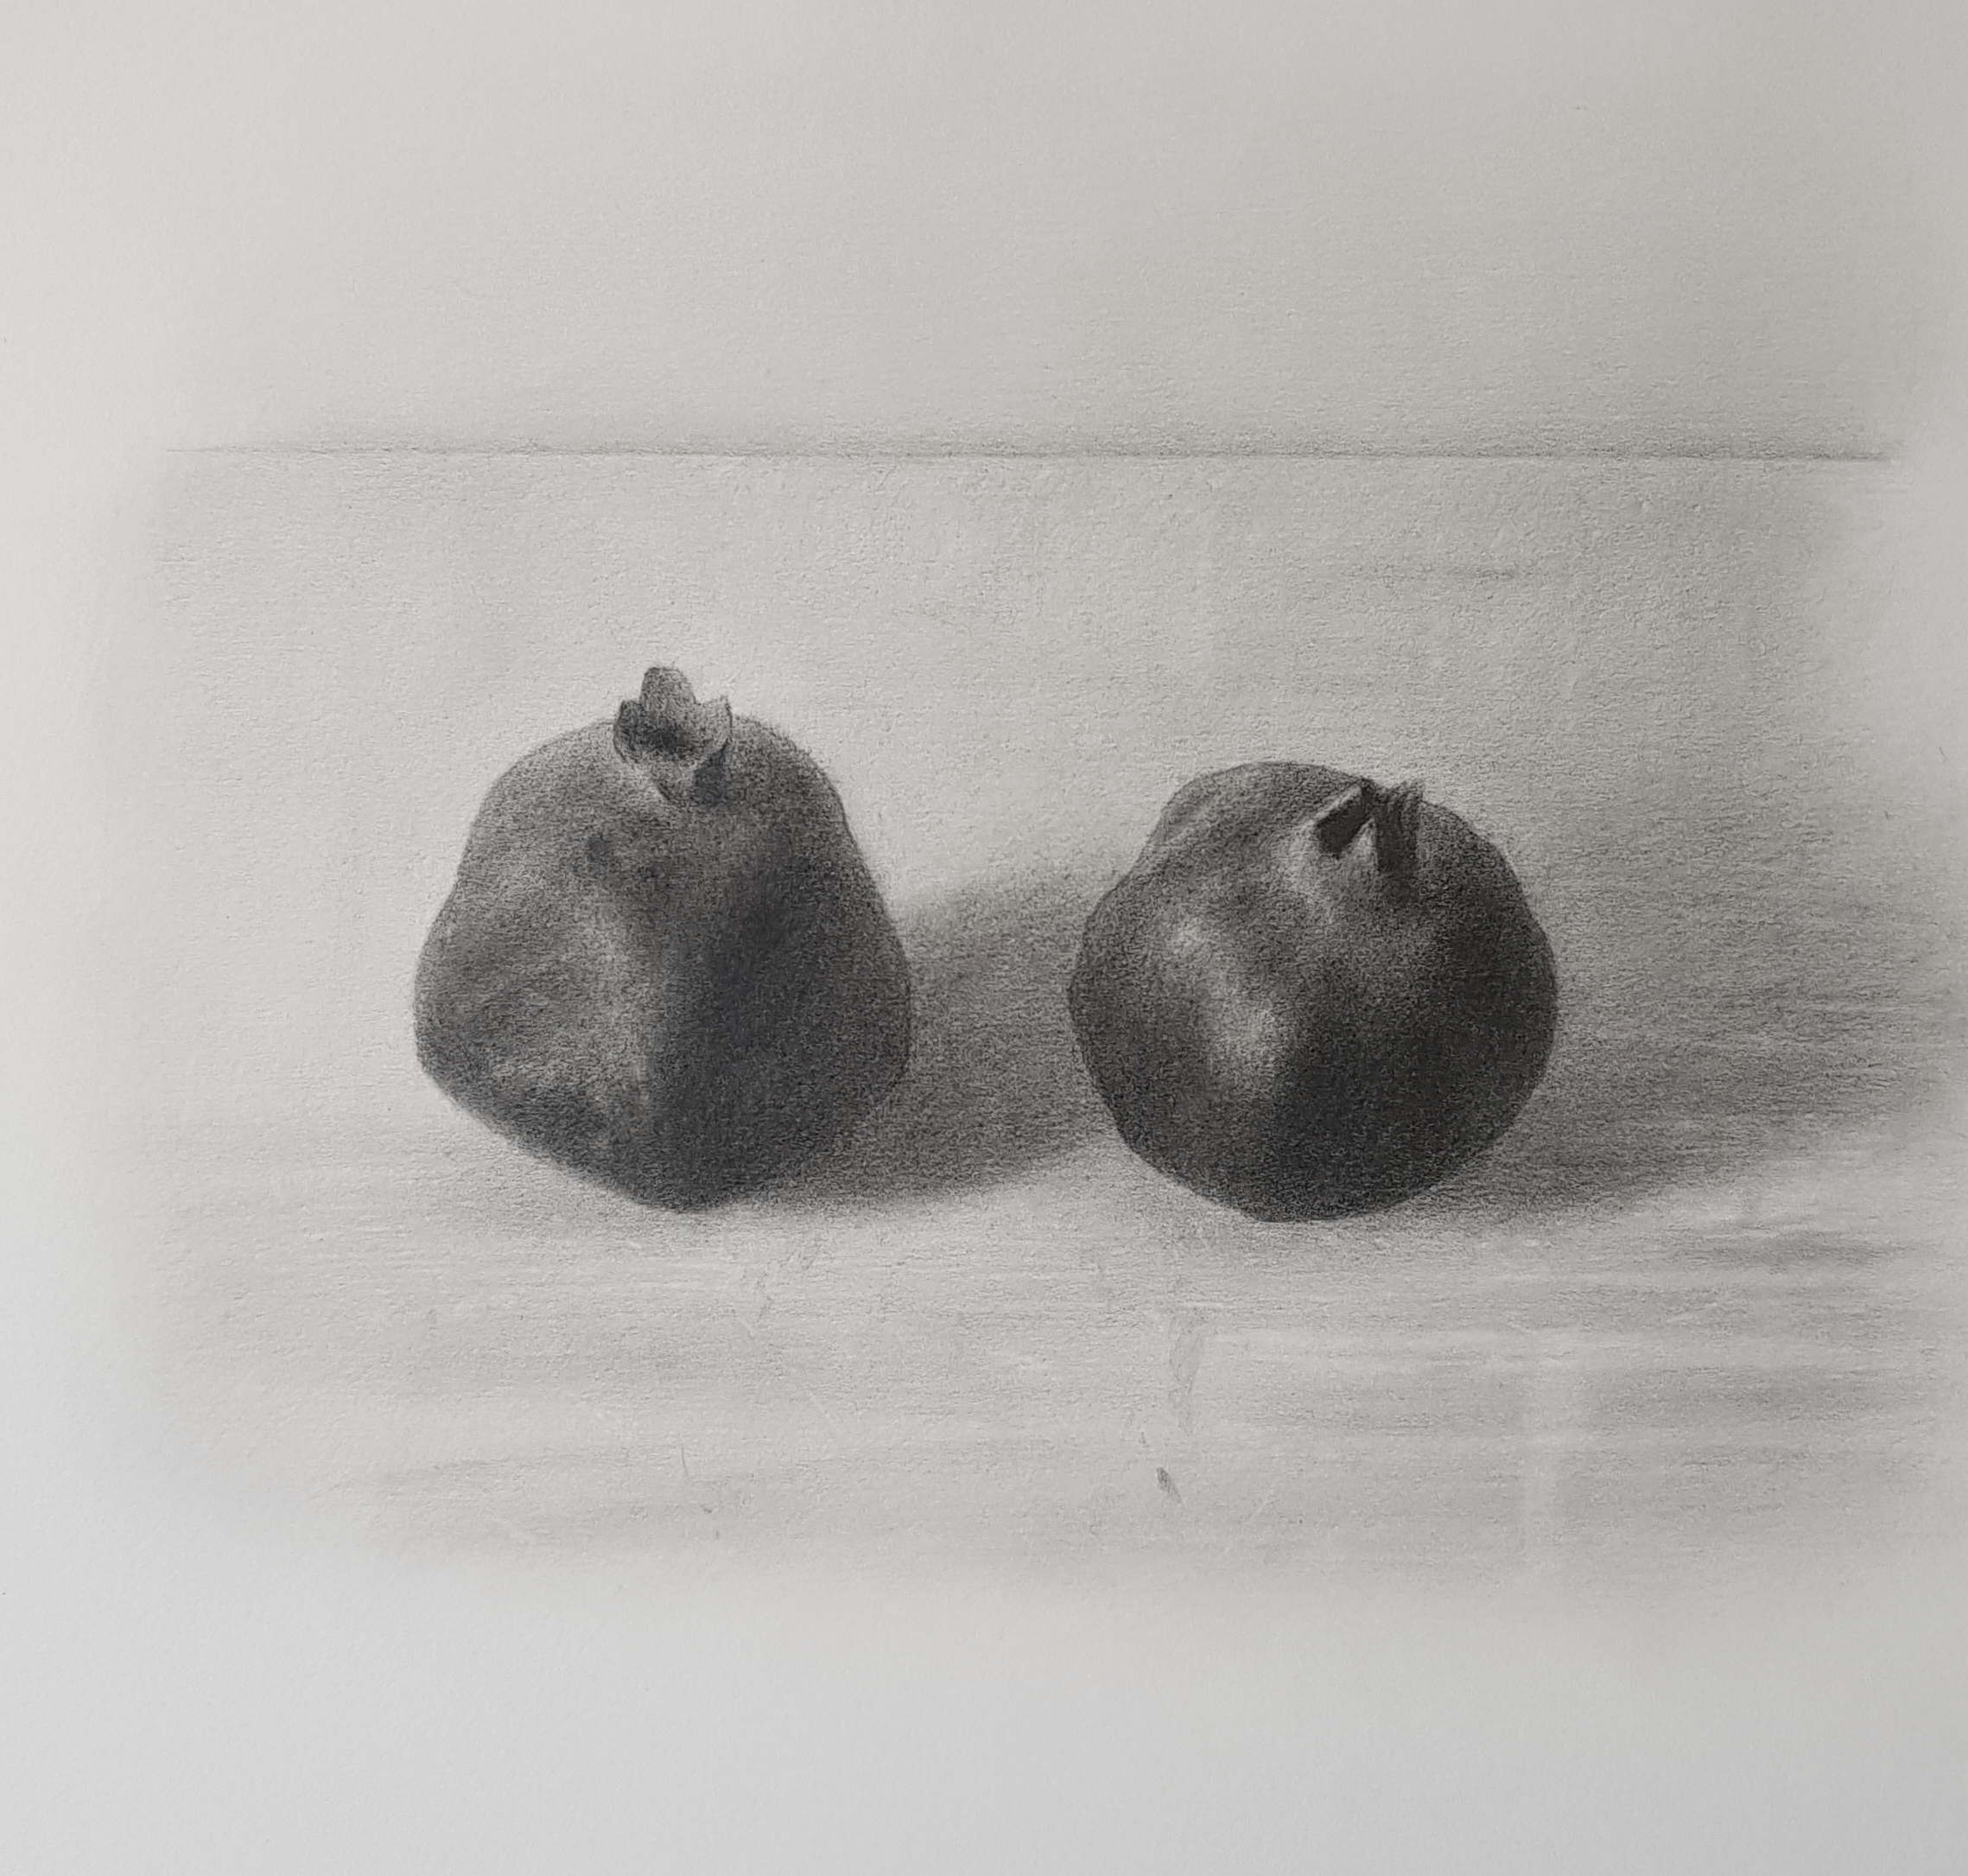 Black pomegranates, pencil on paper, 2020